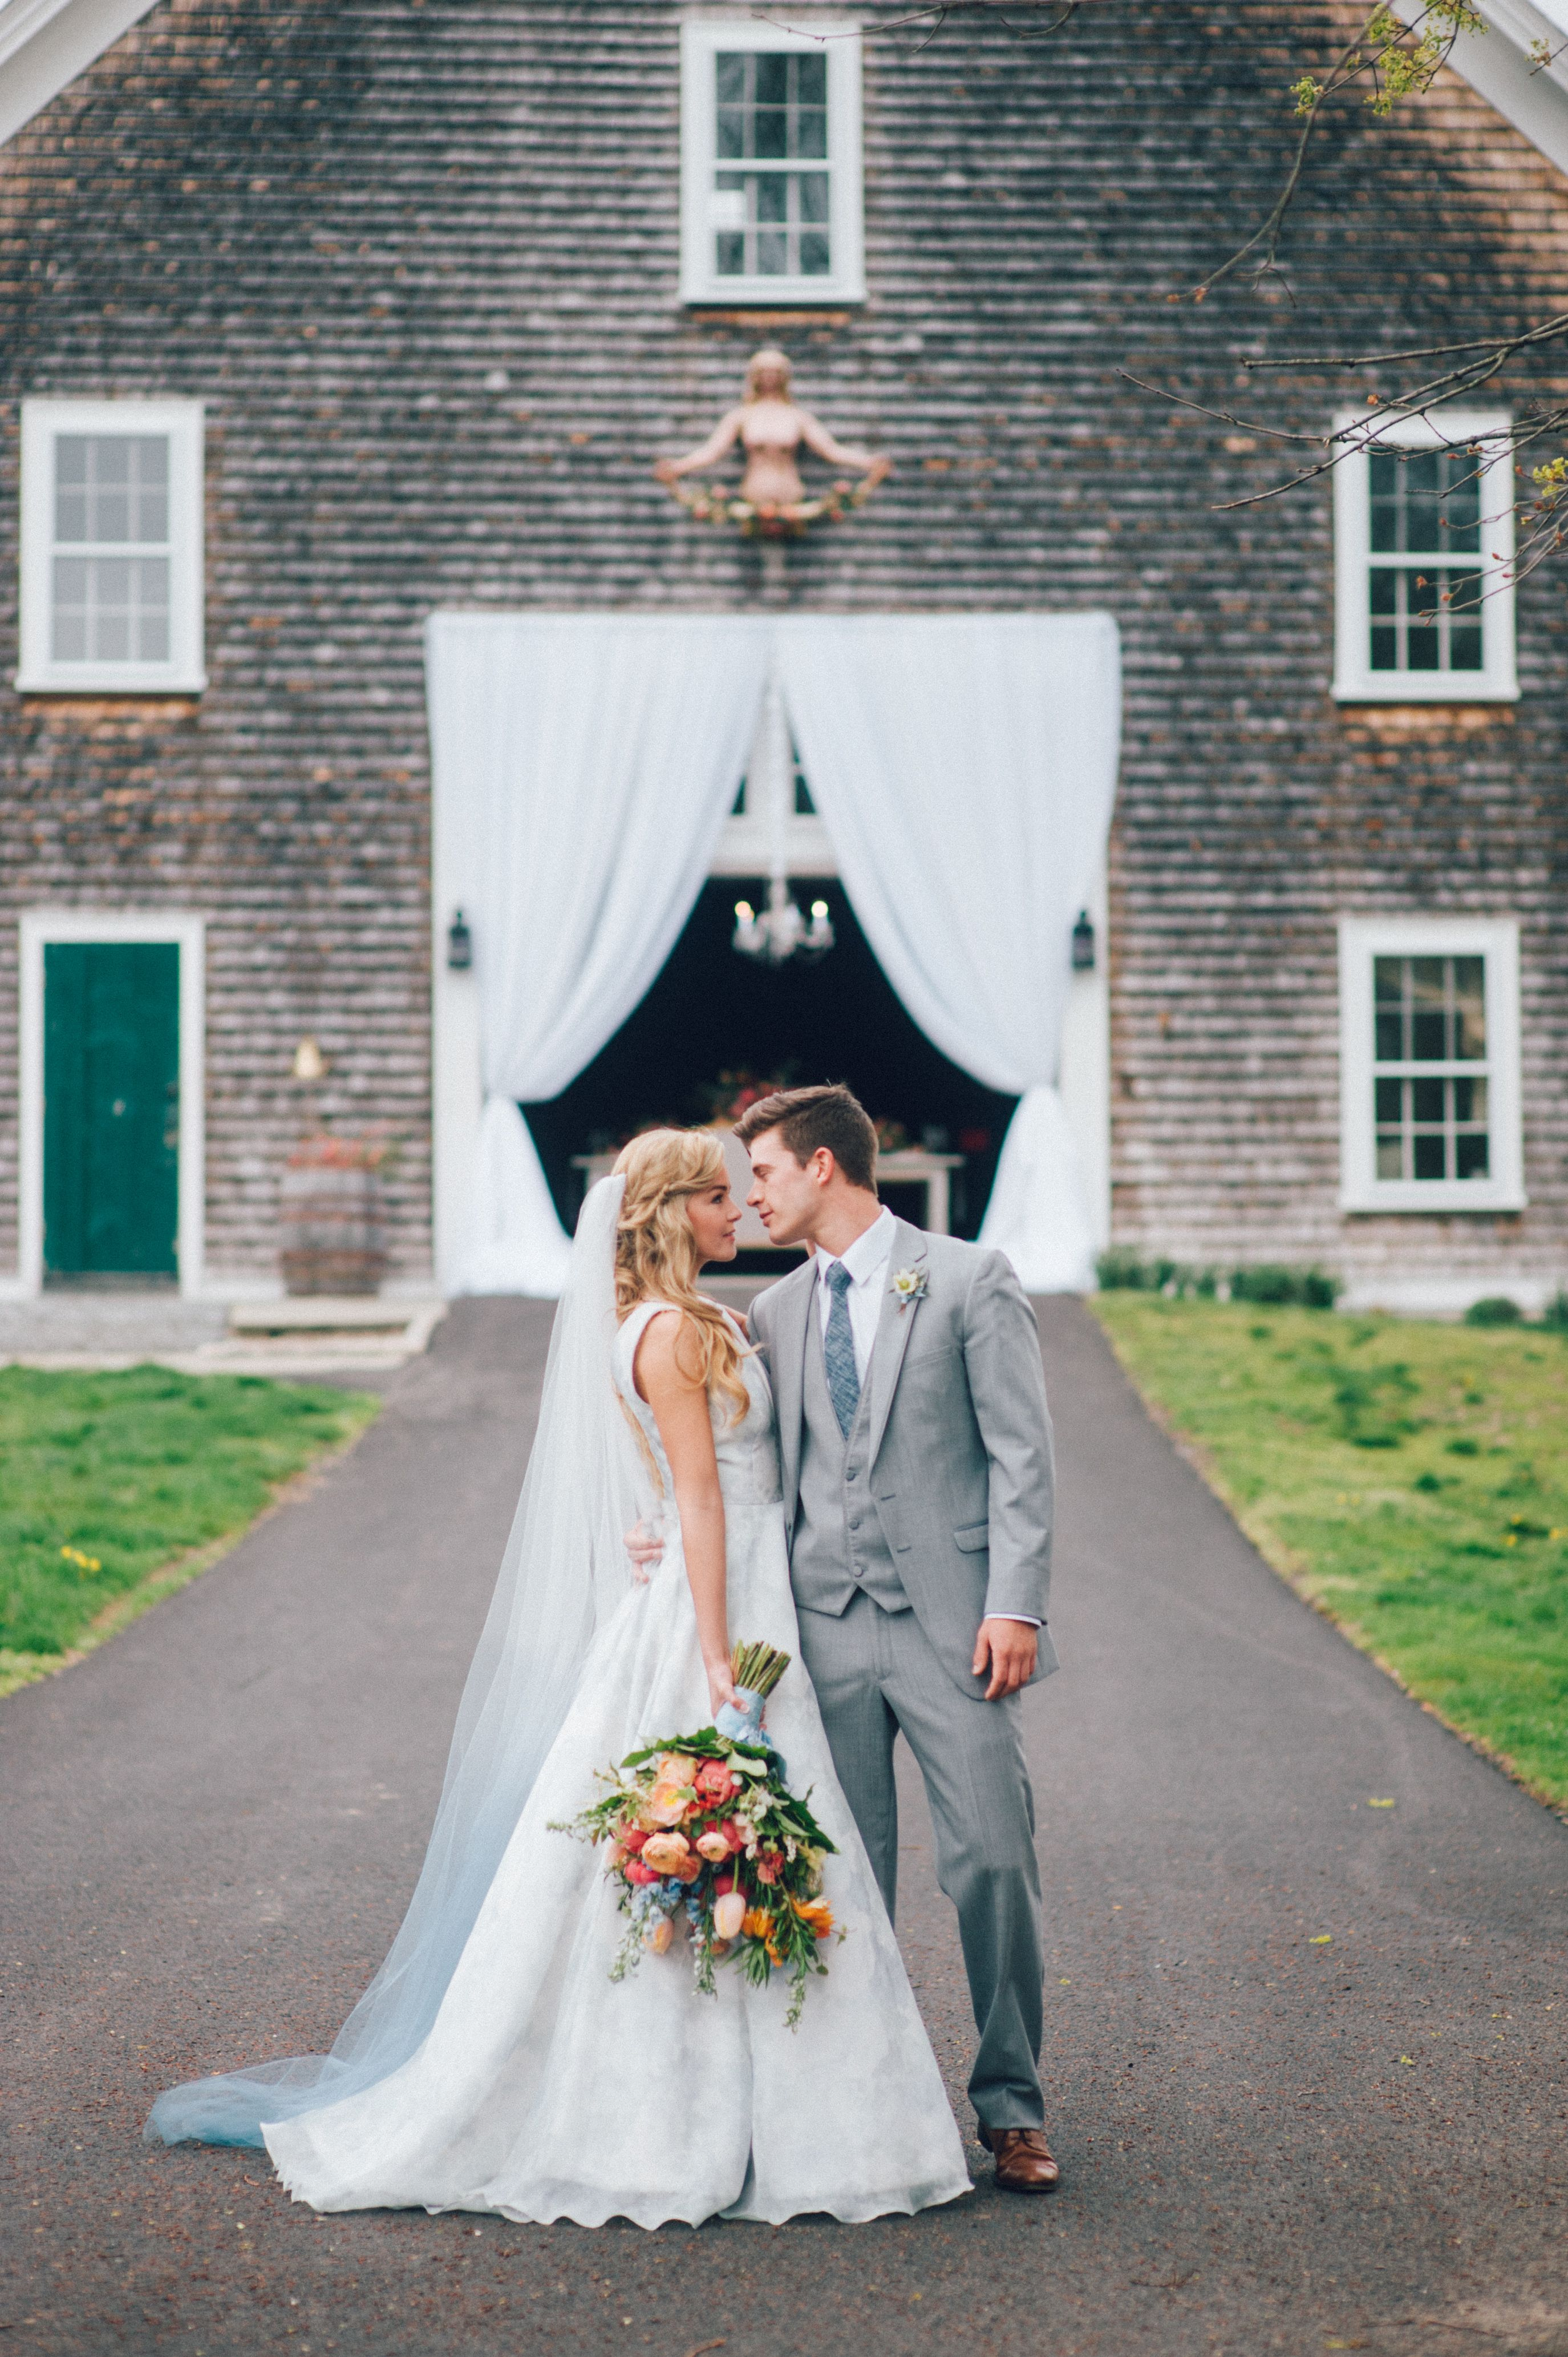 A painted blue floral wedding gown adds a touch of whimsy floral